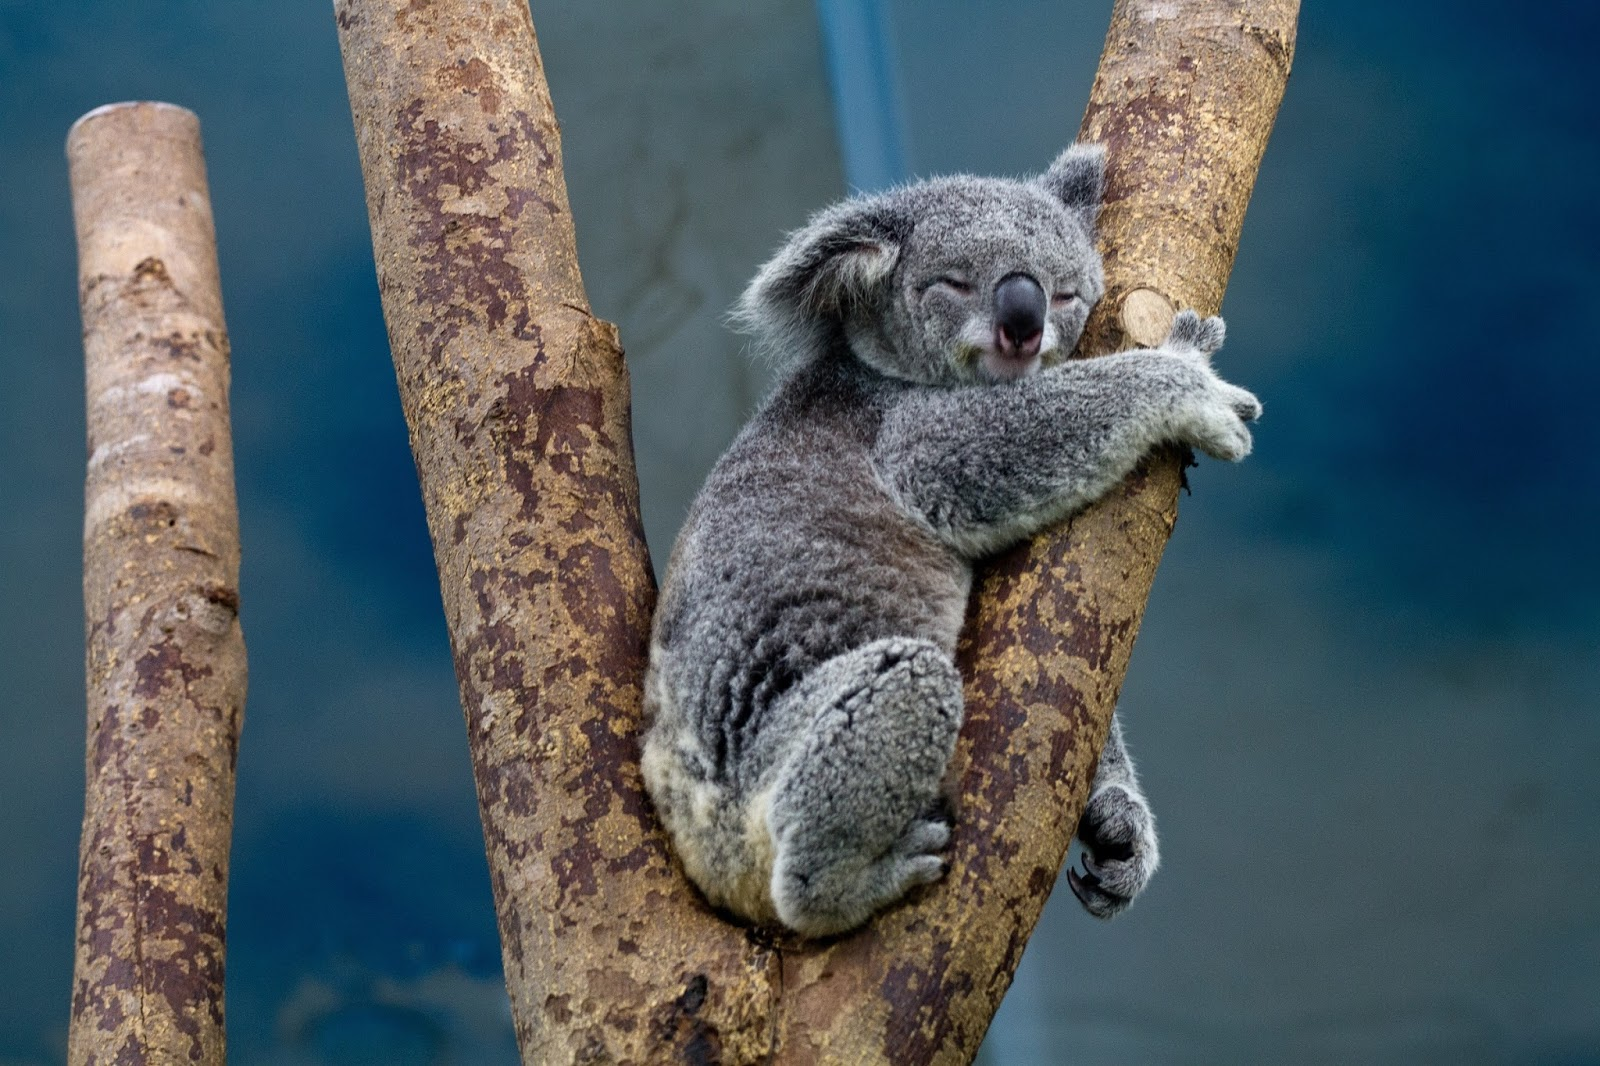 A koala sleeping on branches of a tree.